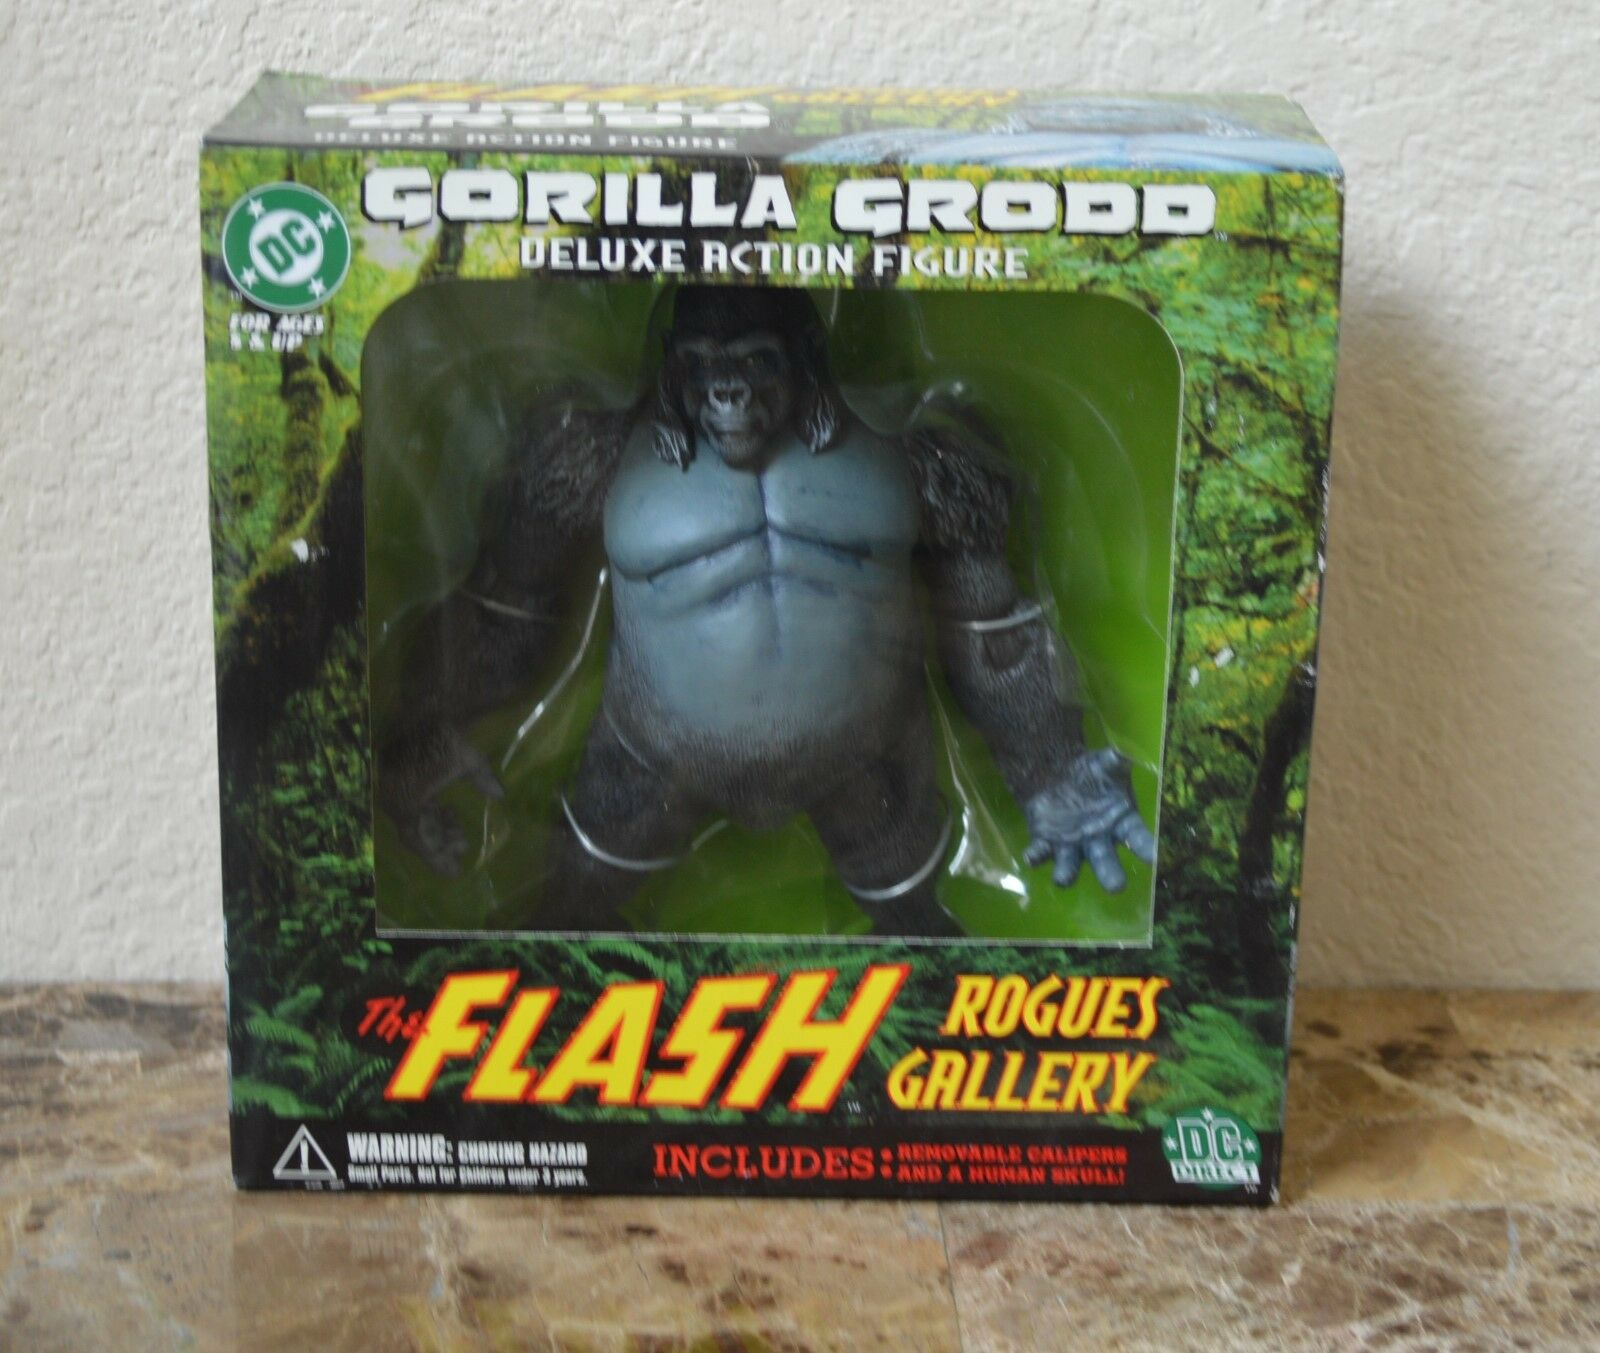 Nuovo Nuovo Nuovo DC Direct the Flash Rogues Gtuttiery Gorilla Grodd Deluxe azione cifra d0d8c5